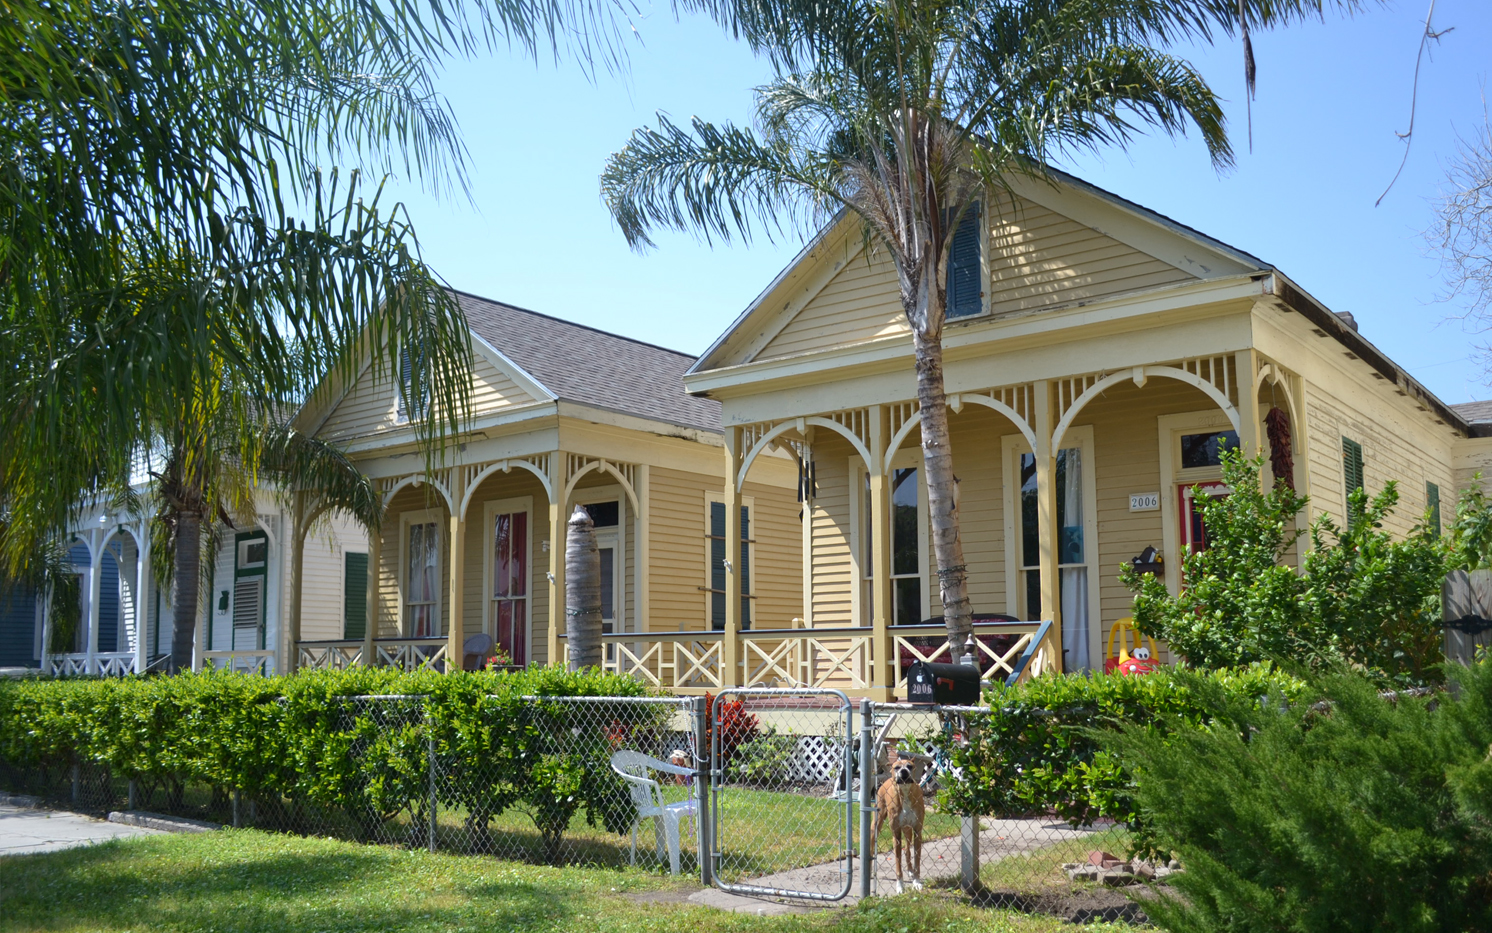 TX_Galveston County_Lost Bayou Historic District_0024.jpg